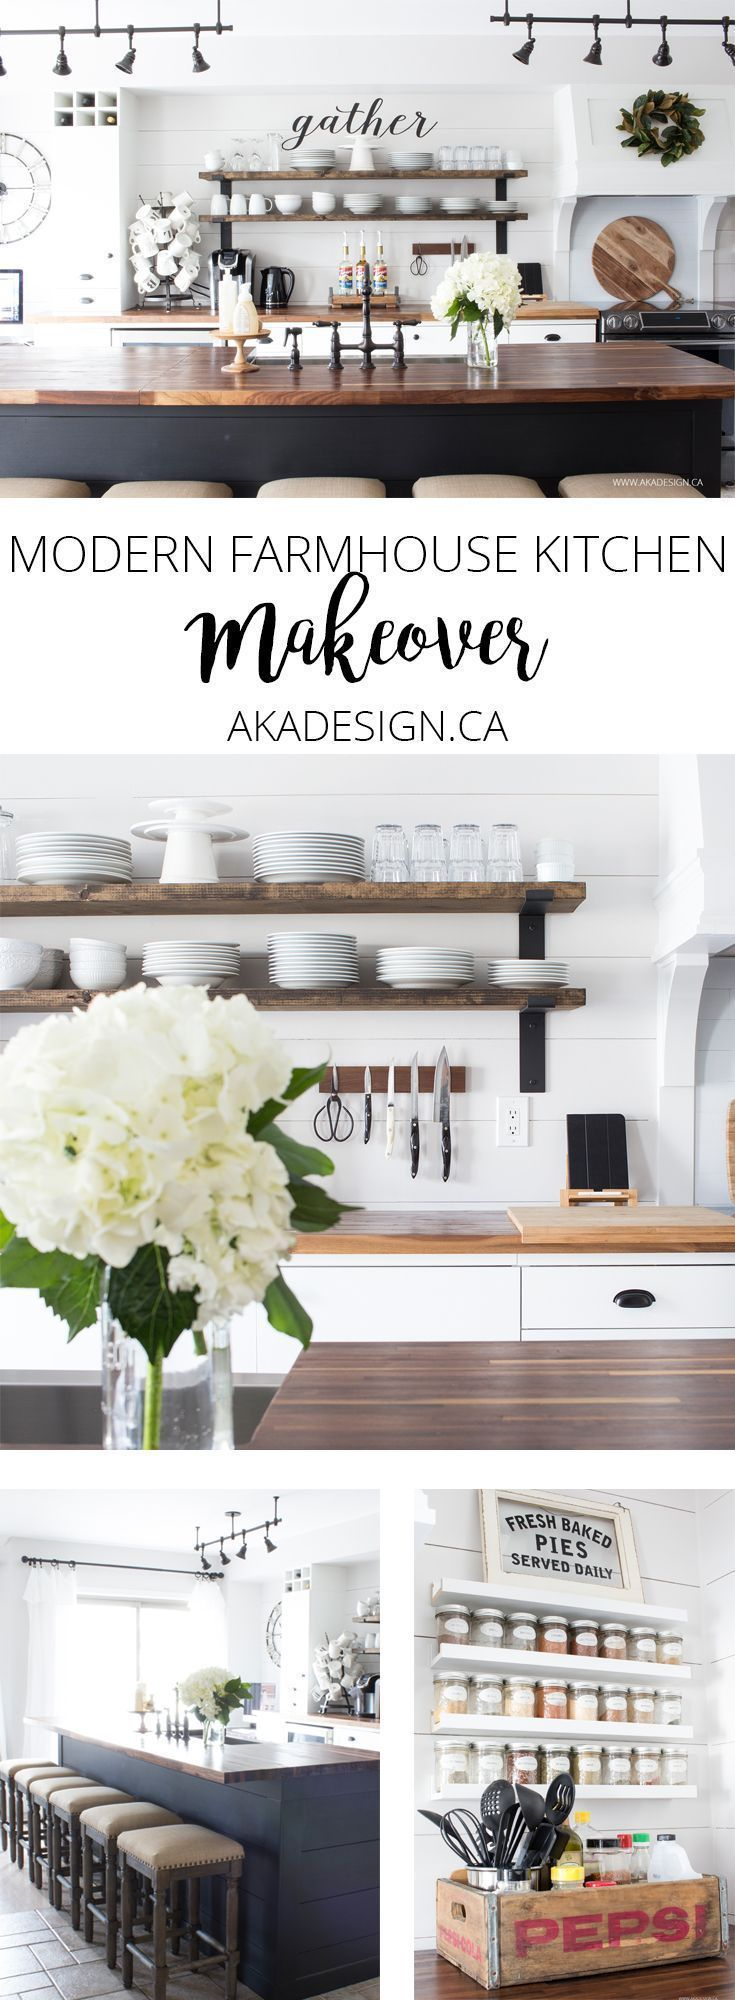 I LOVE this modern farmhouse kitchen makeover! You can totally put modern farmhouse style into a suburban home.